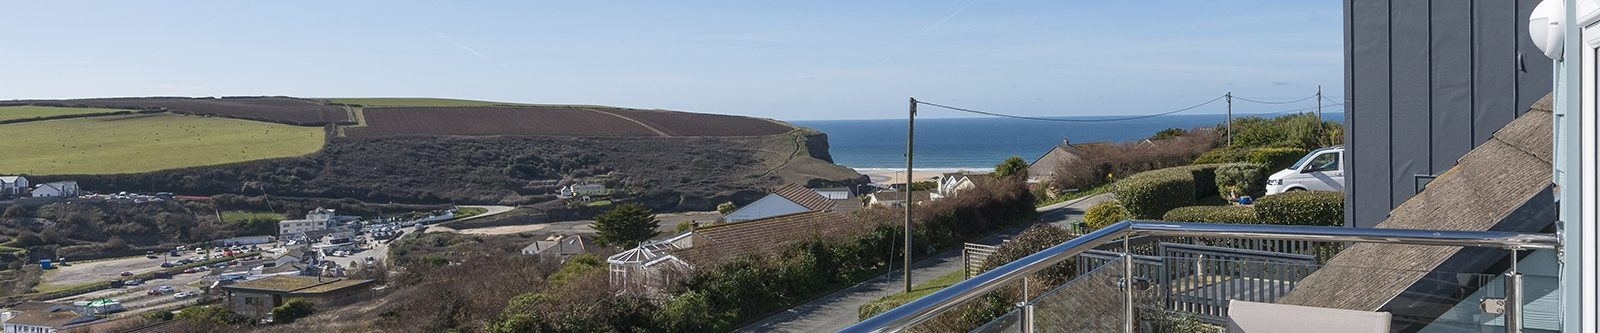 view from Mawgan Porth Apartments